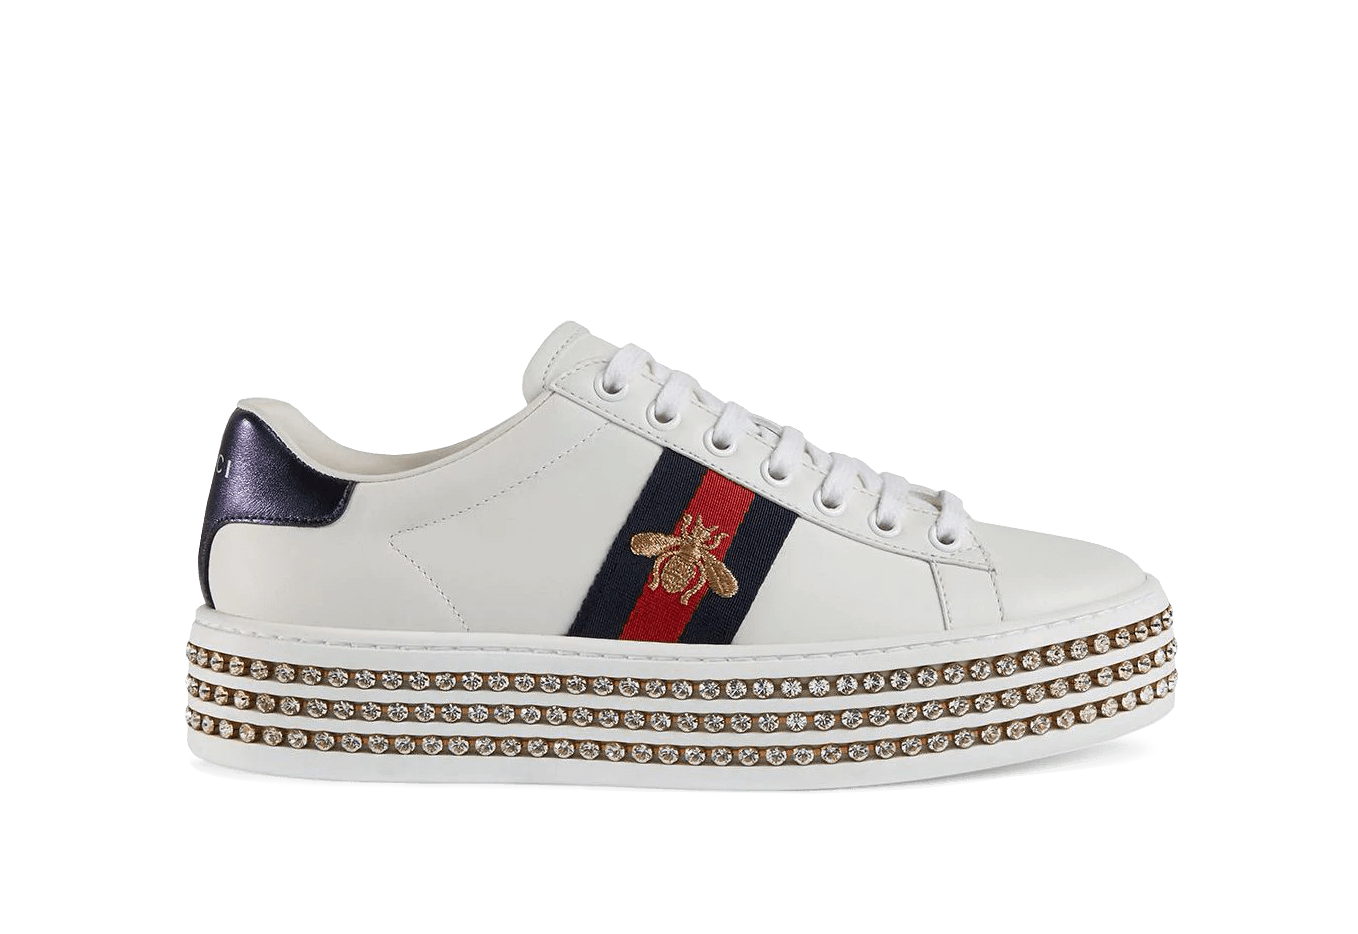 Buy New Gucci     Crystals sneakers